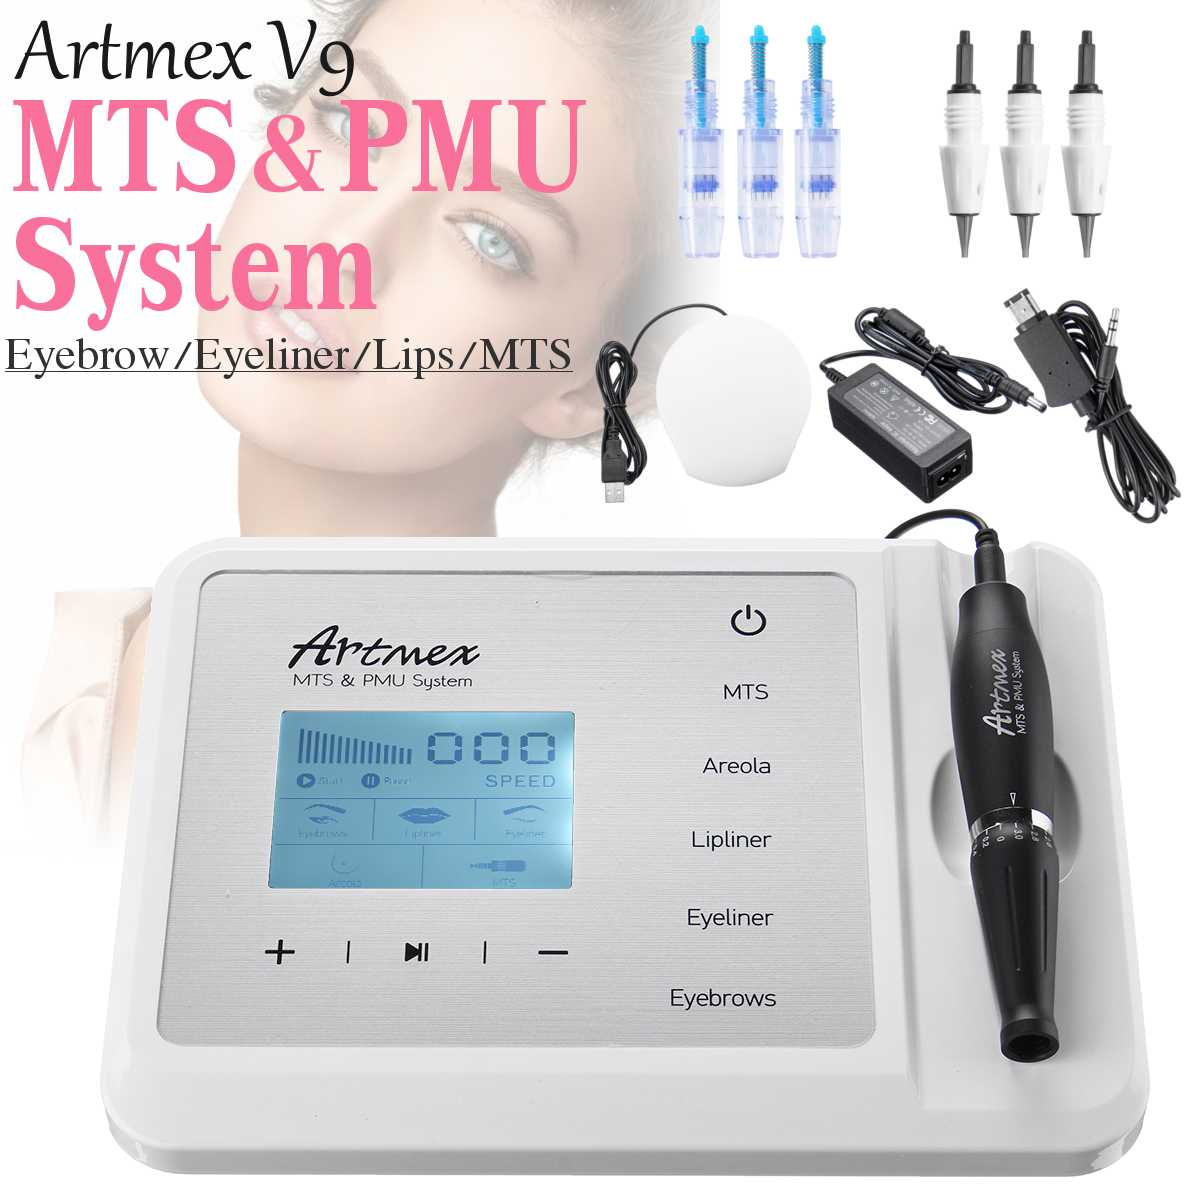 Newest Permanent Makeup Tattoo Machine Artmex V9 Eye Brow Lip Rotary Pen MTS PMU System With V9 Tattoo NeedleNewest Permanent Makeup Tattoo Machine Artmex V9 Eye Brow Lip Rotary Pen MTS PMU System With V9 Tattoo Needle